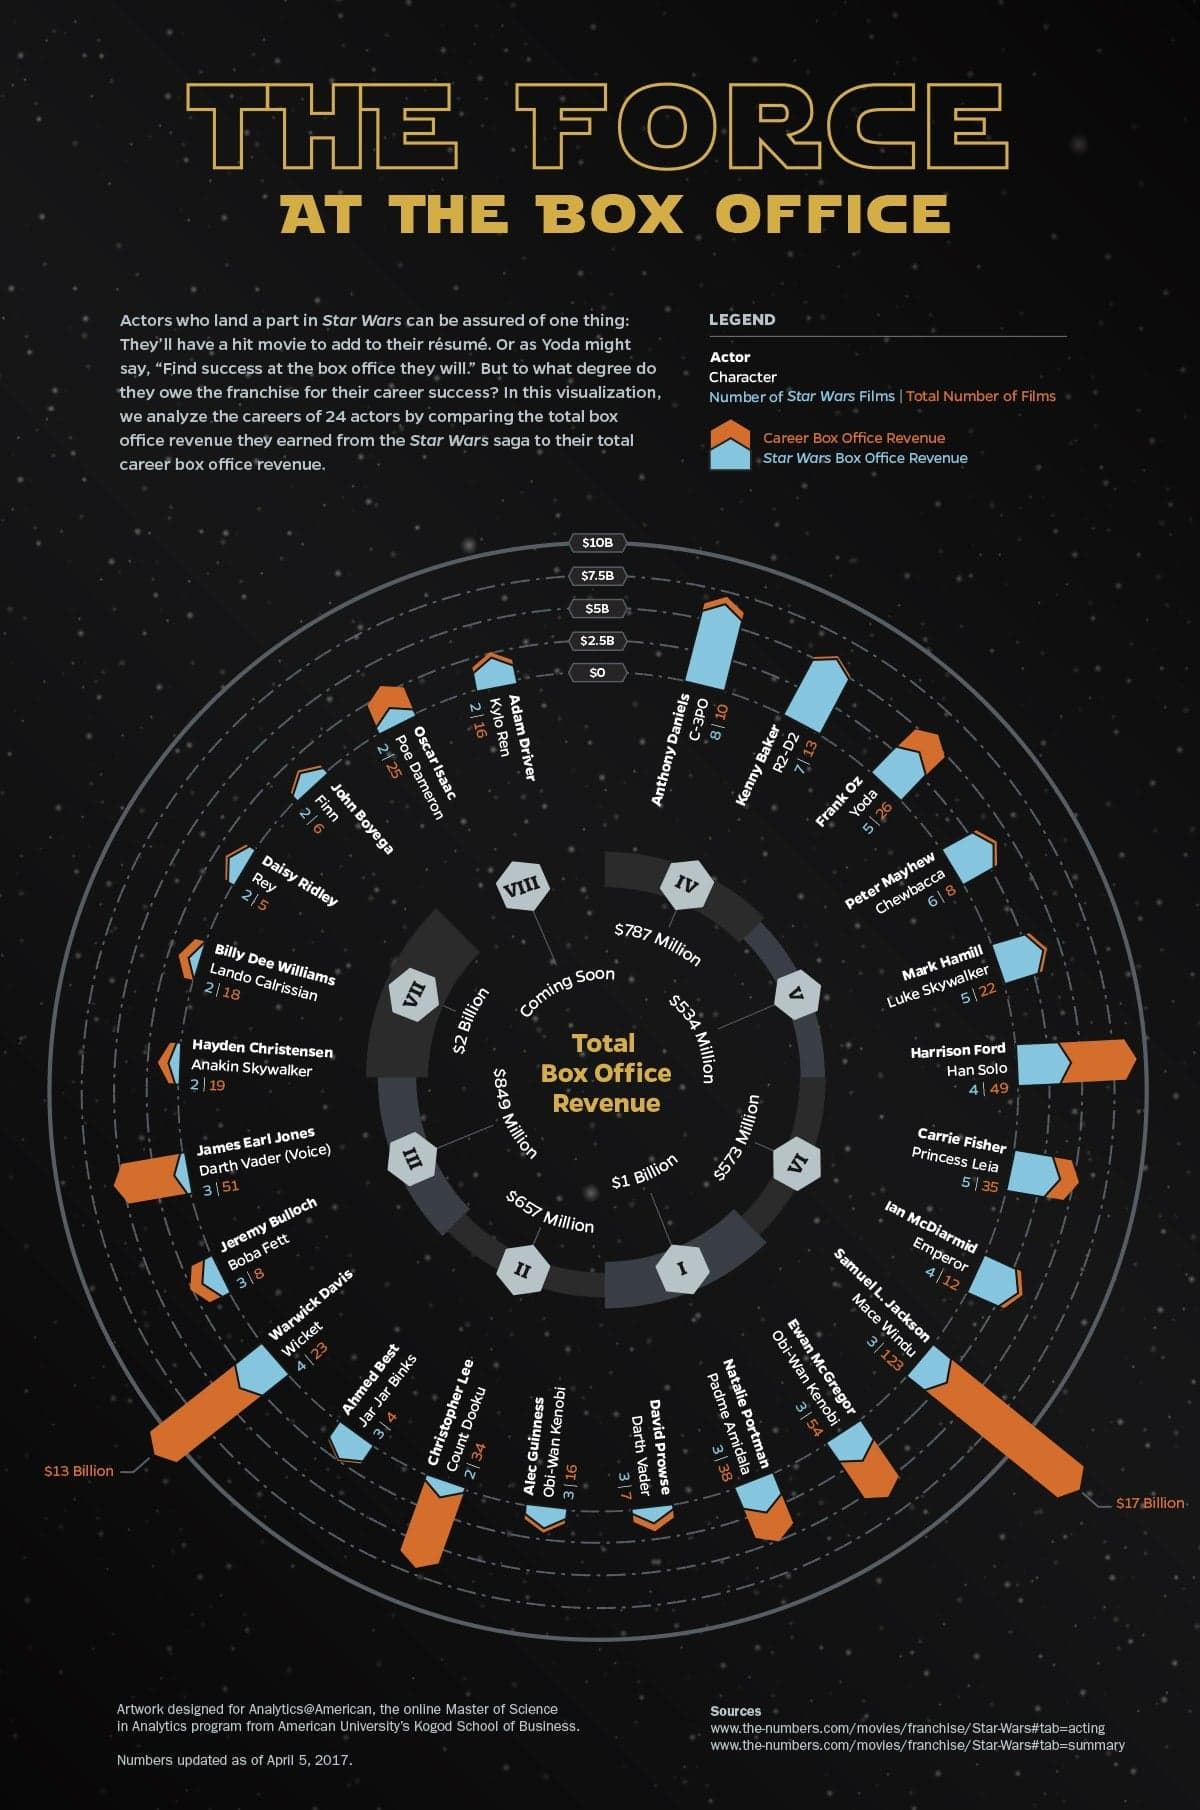 infographic showing analytics of Star Wars